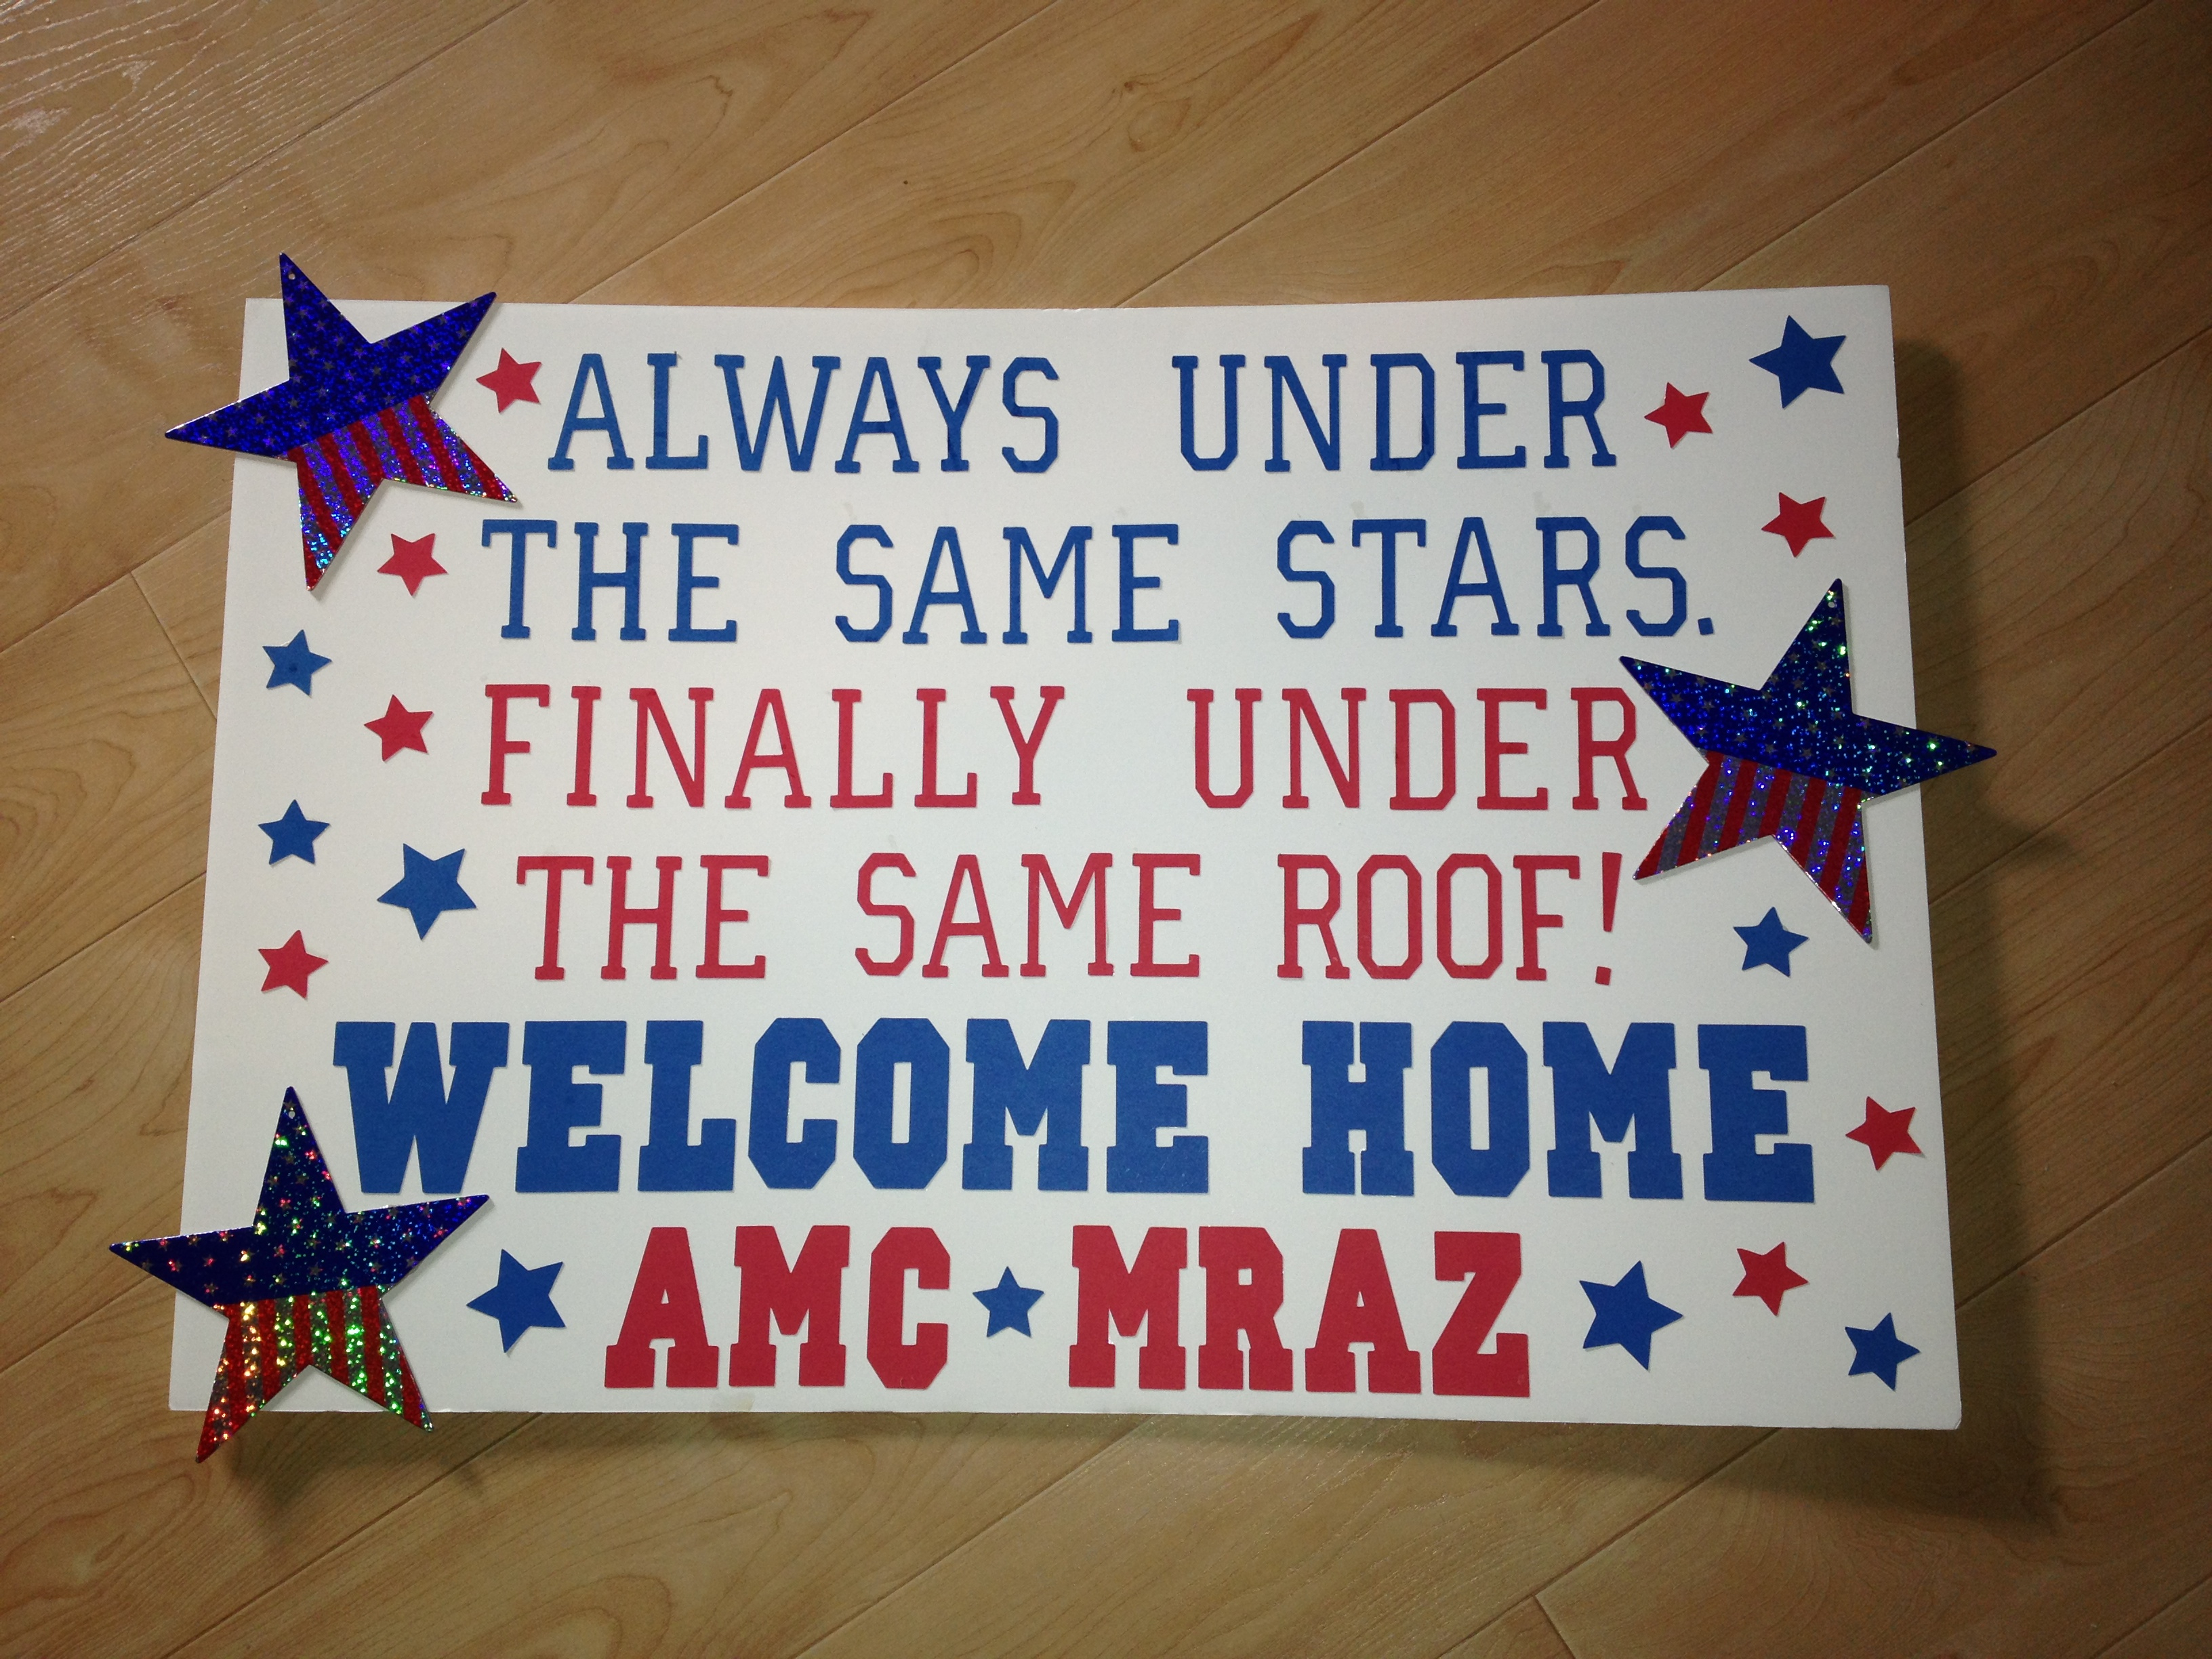 Quotes about Military coming home (20 quotes)